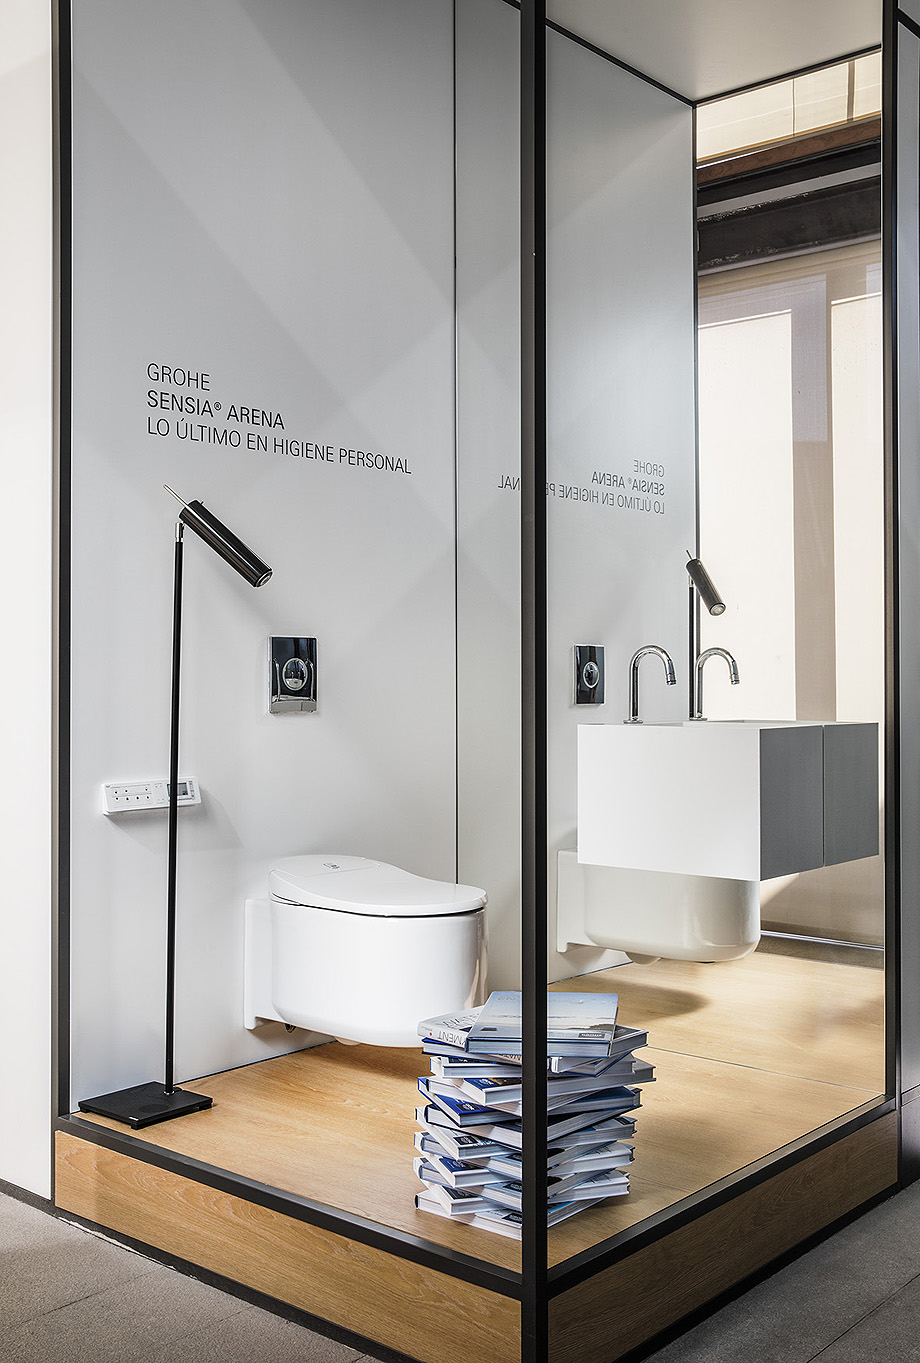 ampliacion showroom grohe en el coam (6)